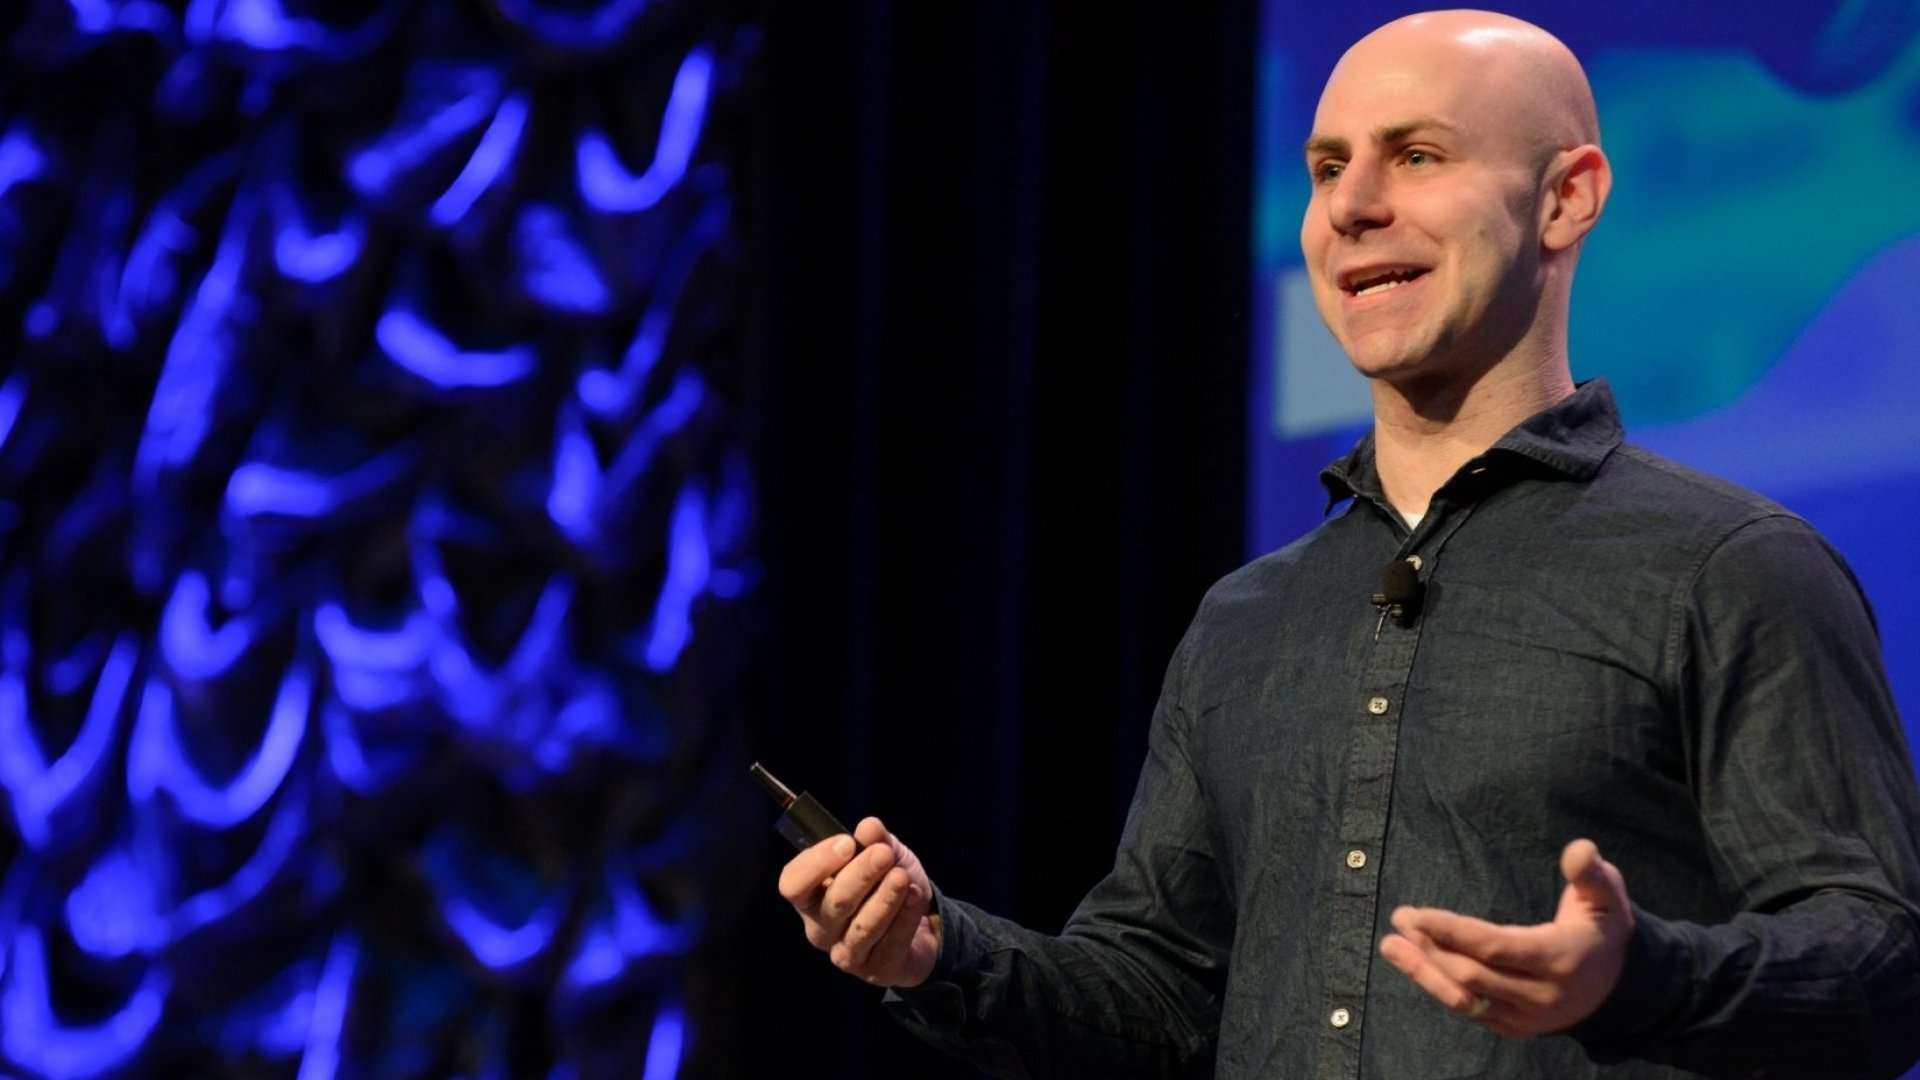 Adam Grant delivers the Interactive Keynote during the SxSW Conference in Austin, Texas. (Photo by Jim Bennett/Getty Images)